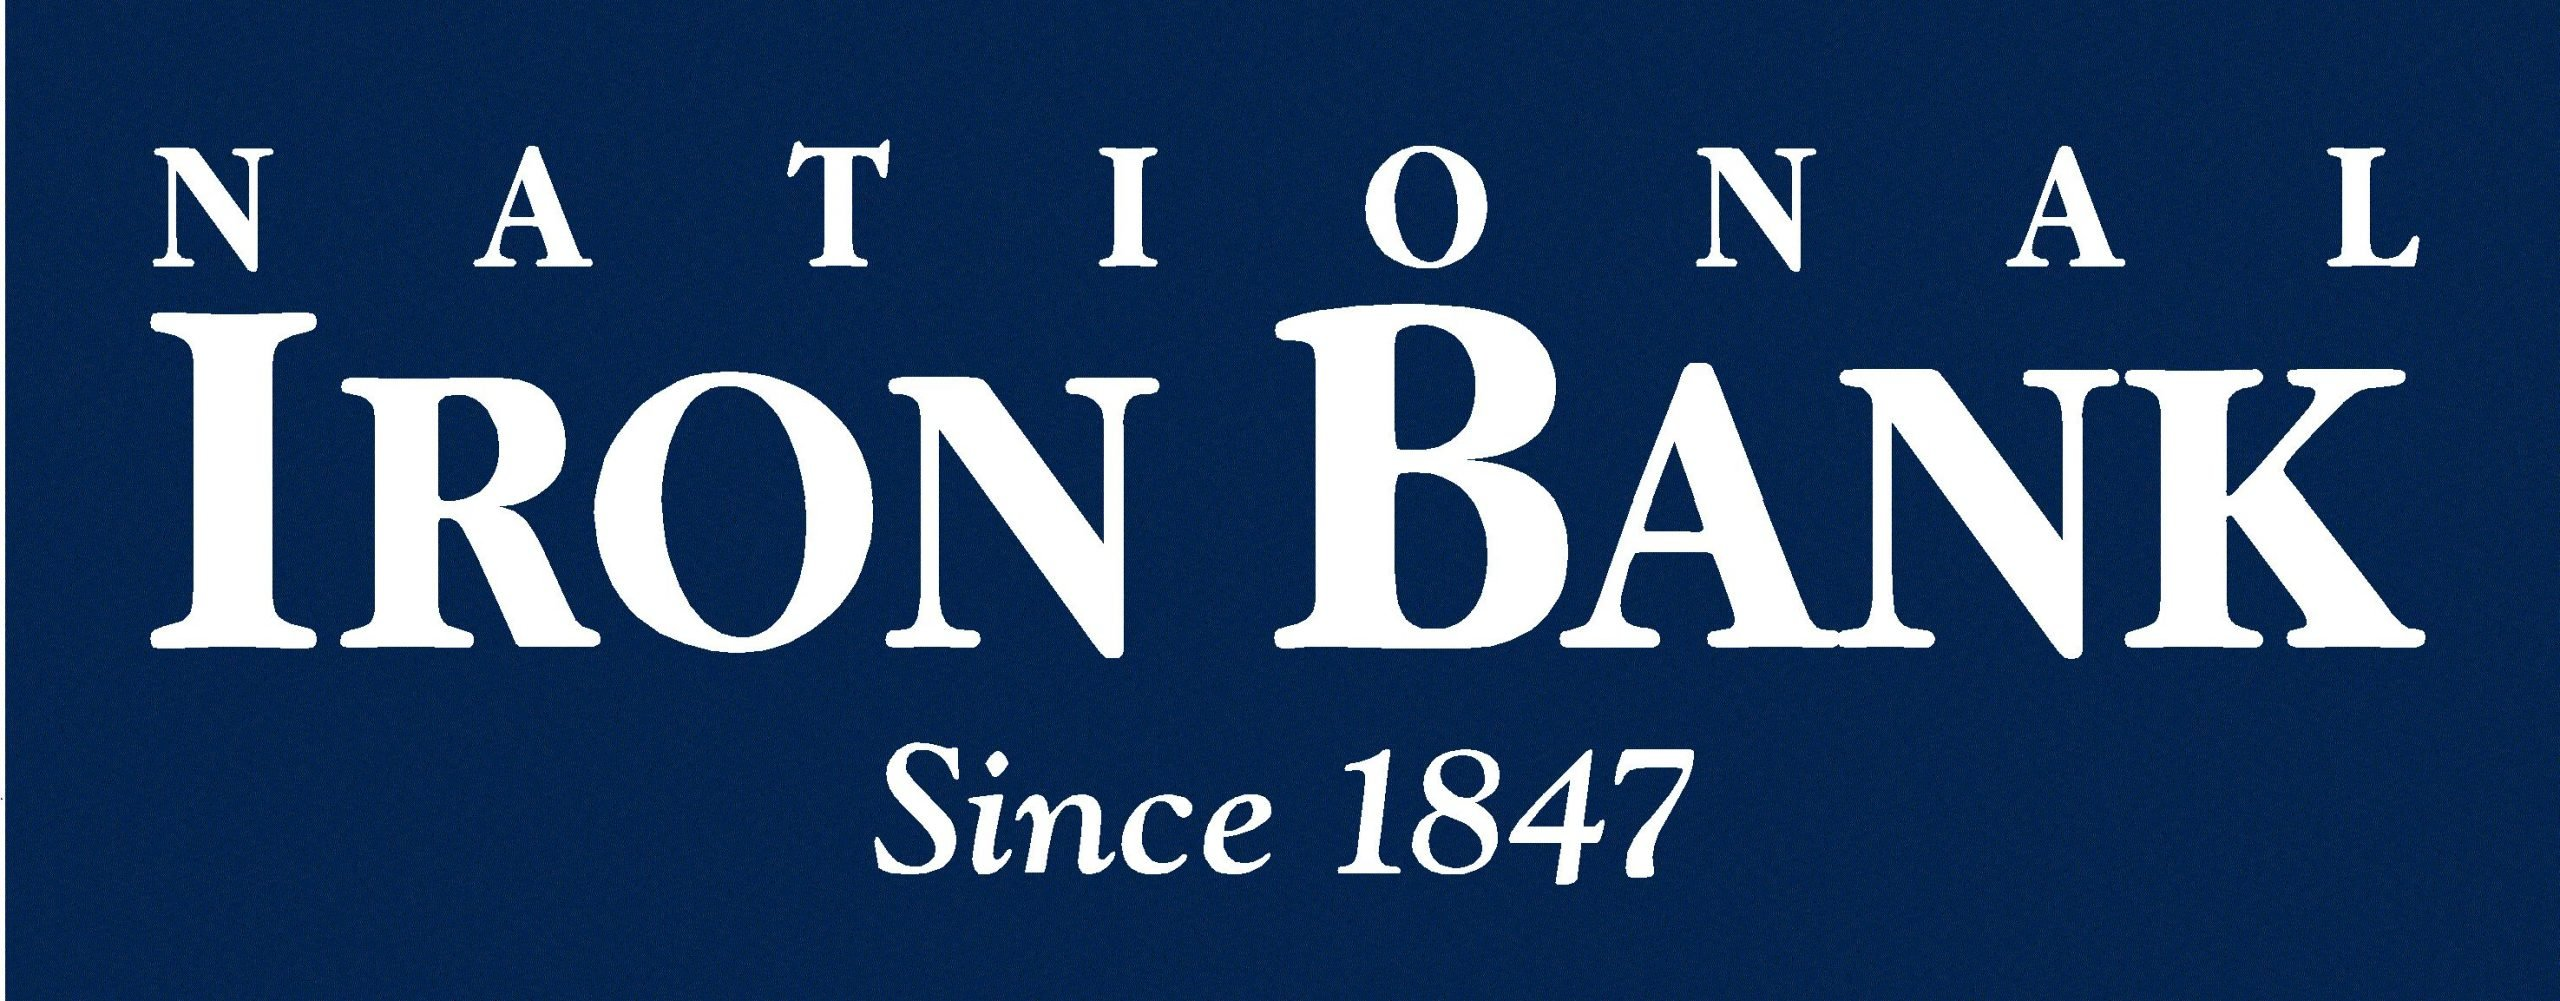 National Iron Bank